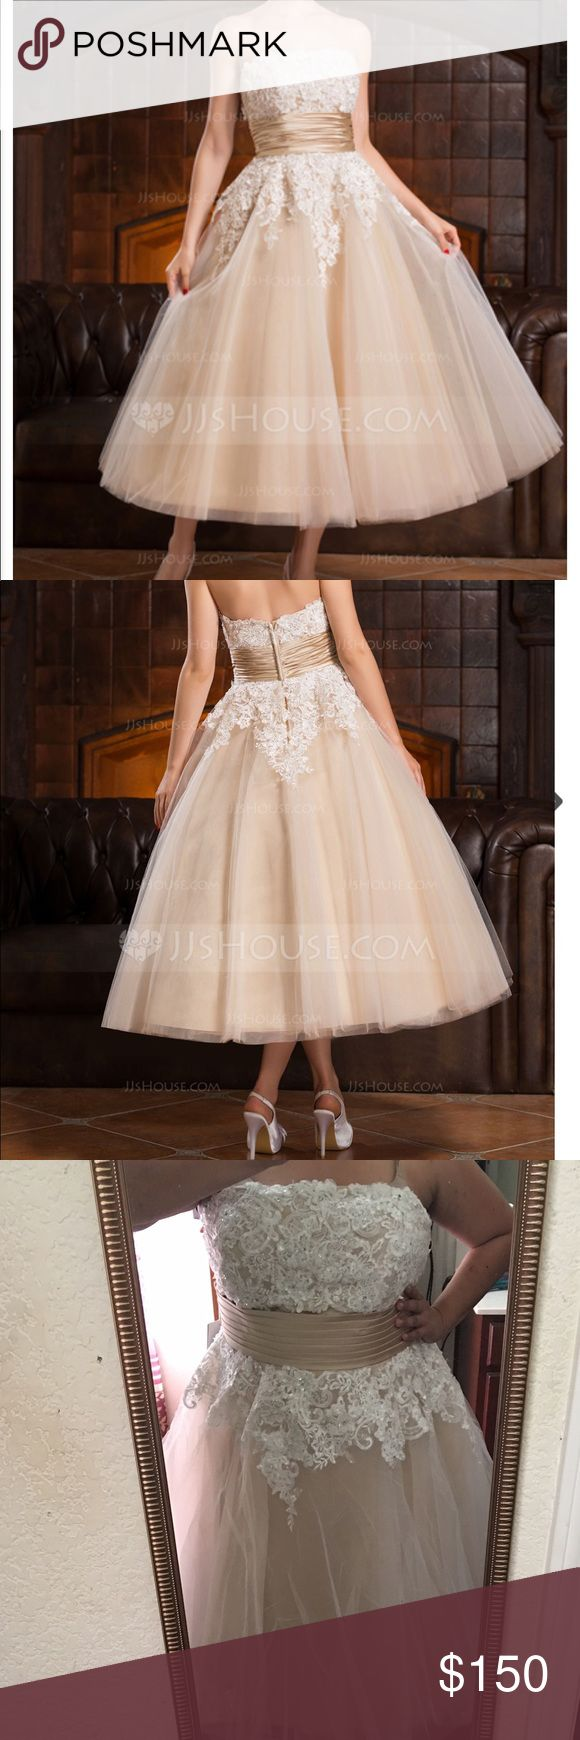 NEW WITH TAGS! Wedding Dress! Brand new wedding dress!! I simply changed color schemes and found a different dress! Willing to negotiate on price, but please be somewhat reasonable on offers, and NO cashier's check will be accepted outside this site! 😬 JJ's House Dresses Wedding